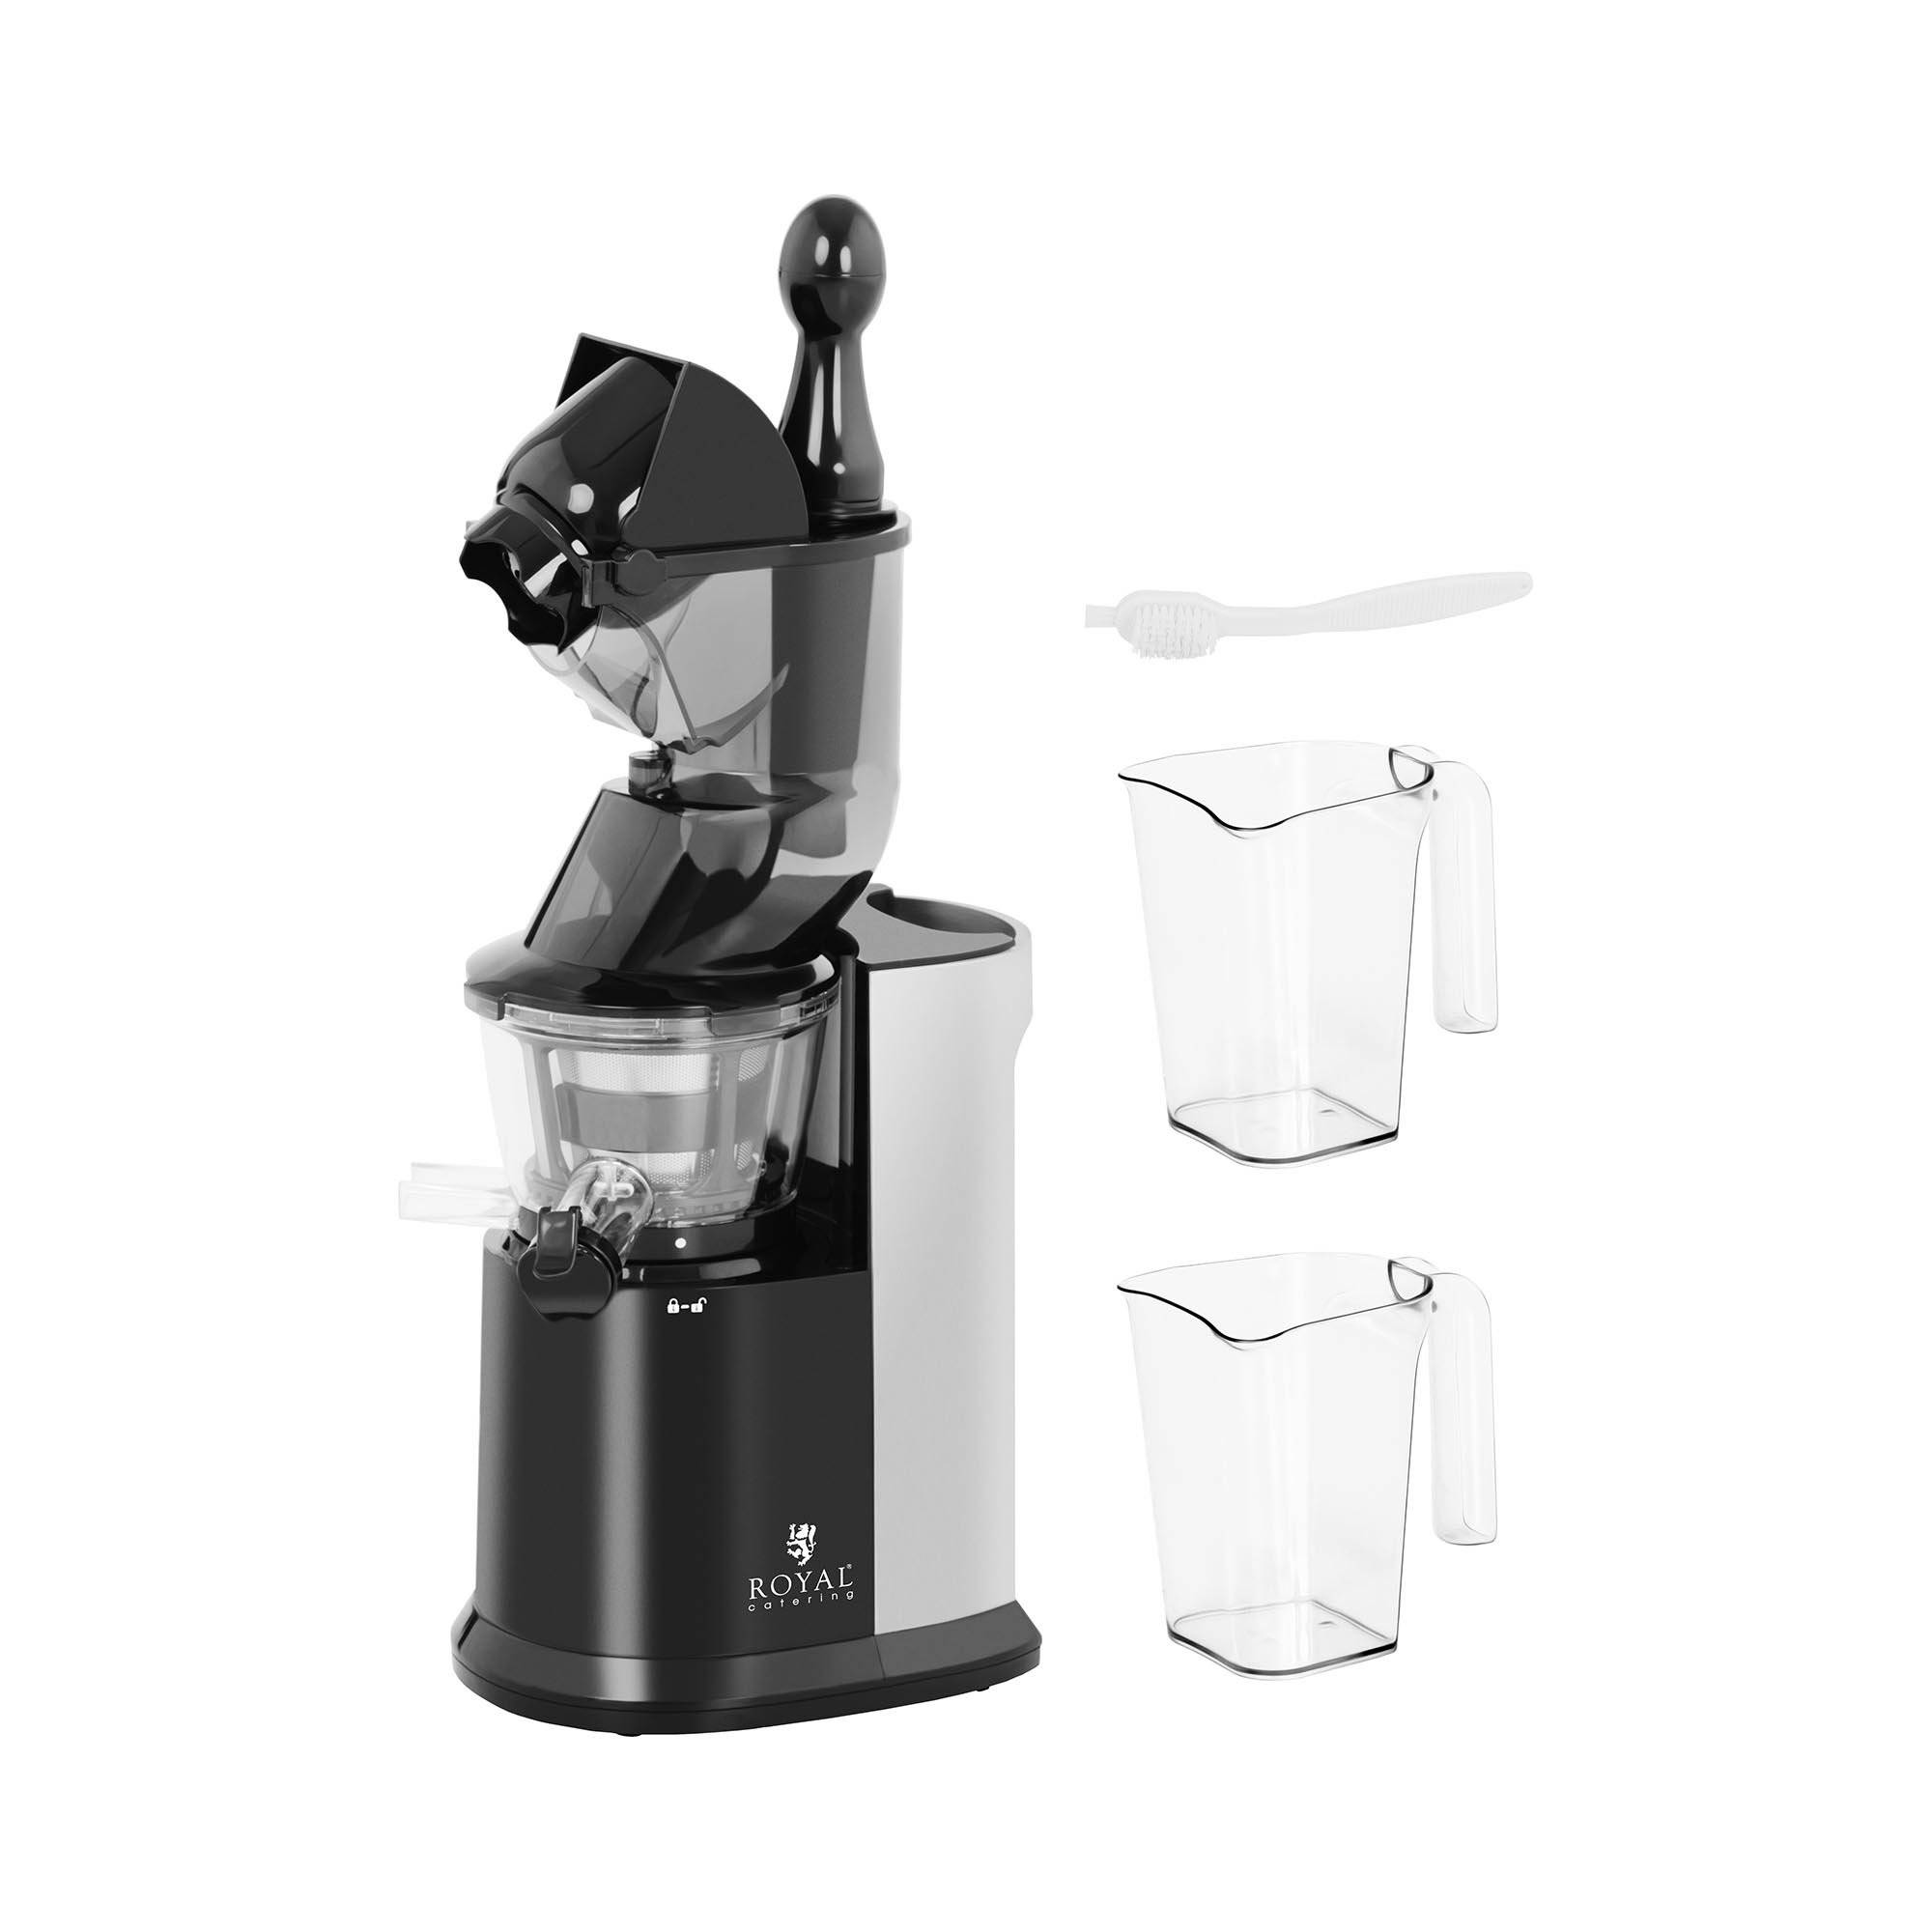 Royal Catering Extracteur jus - Fruits entiers - 250 W - 40 à 65 tr/min RCSS-AC250W